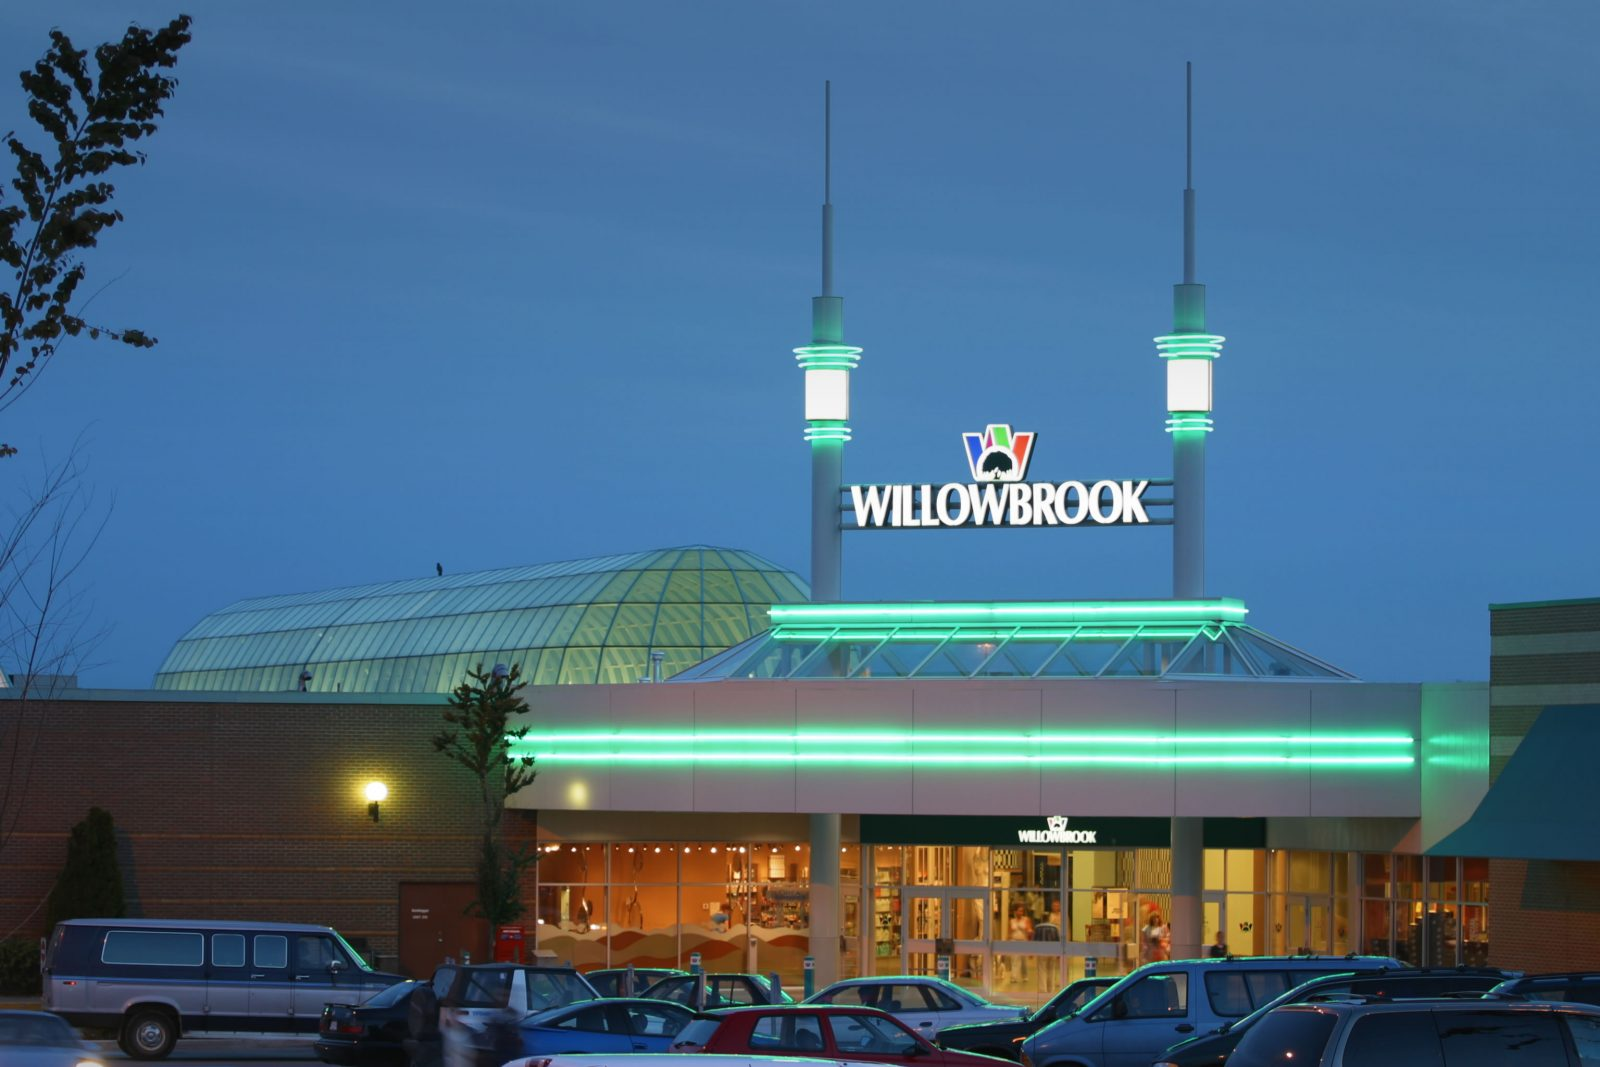 willowbrook-night-2.jpg